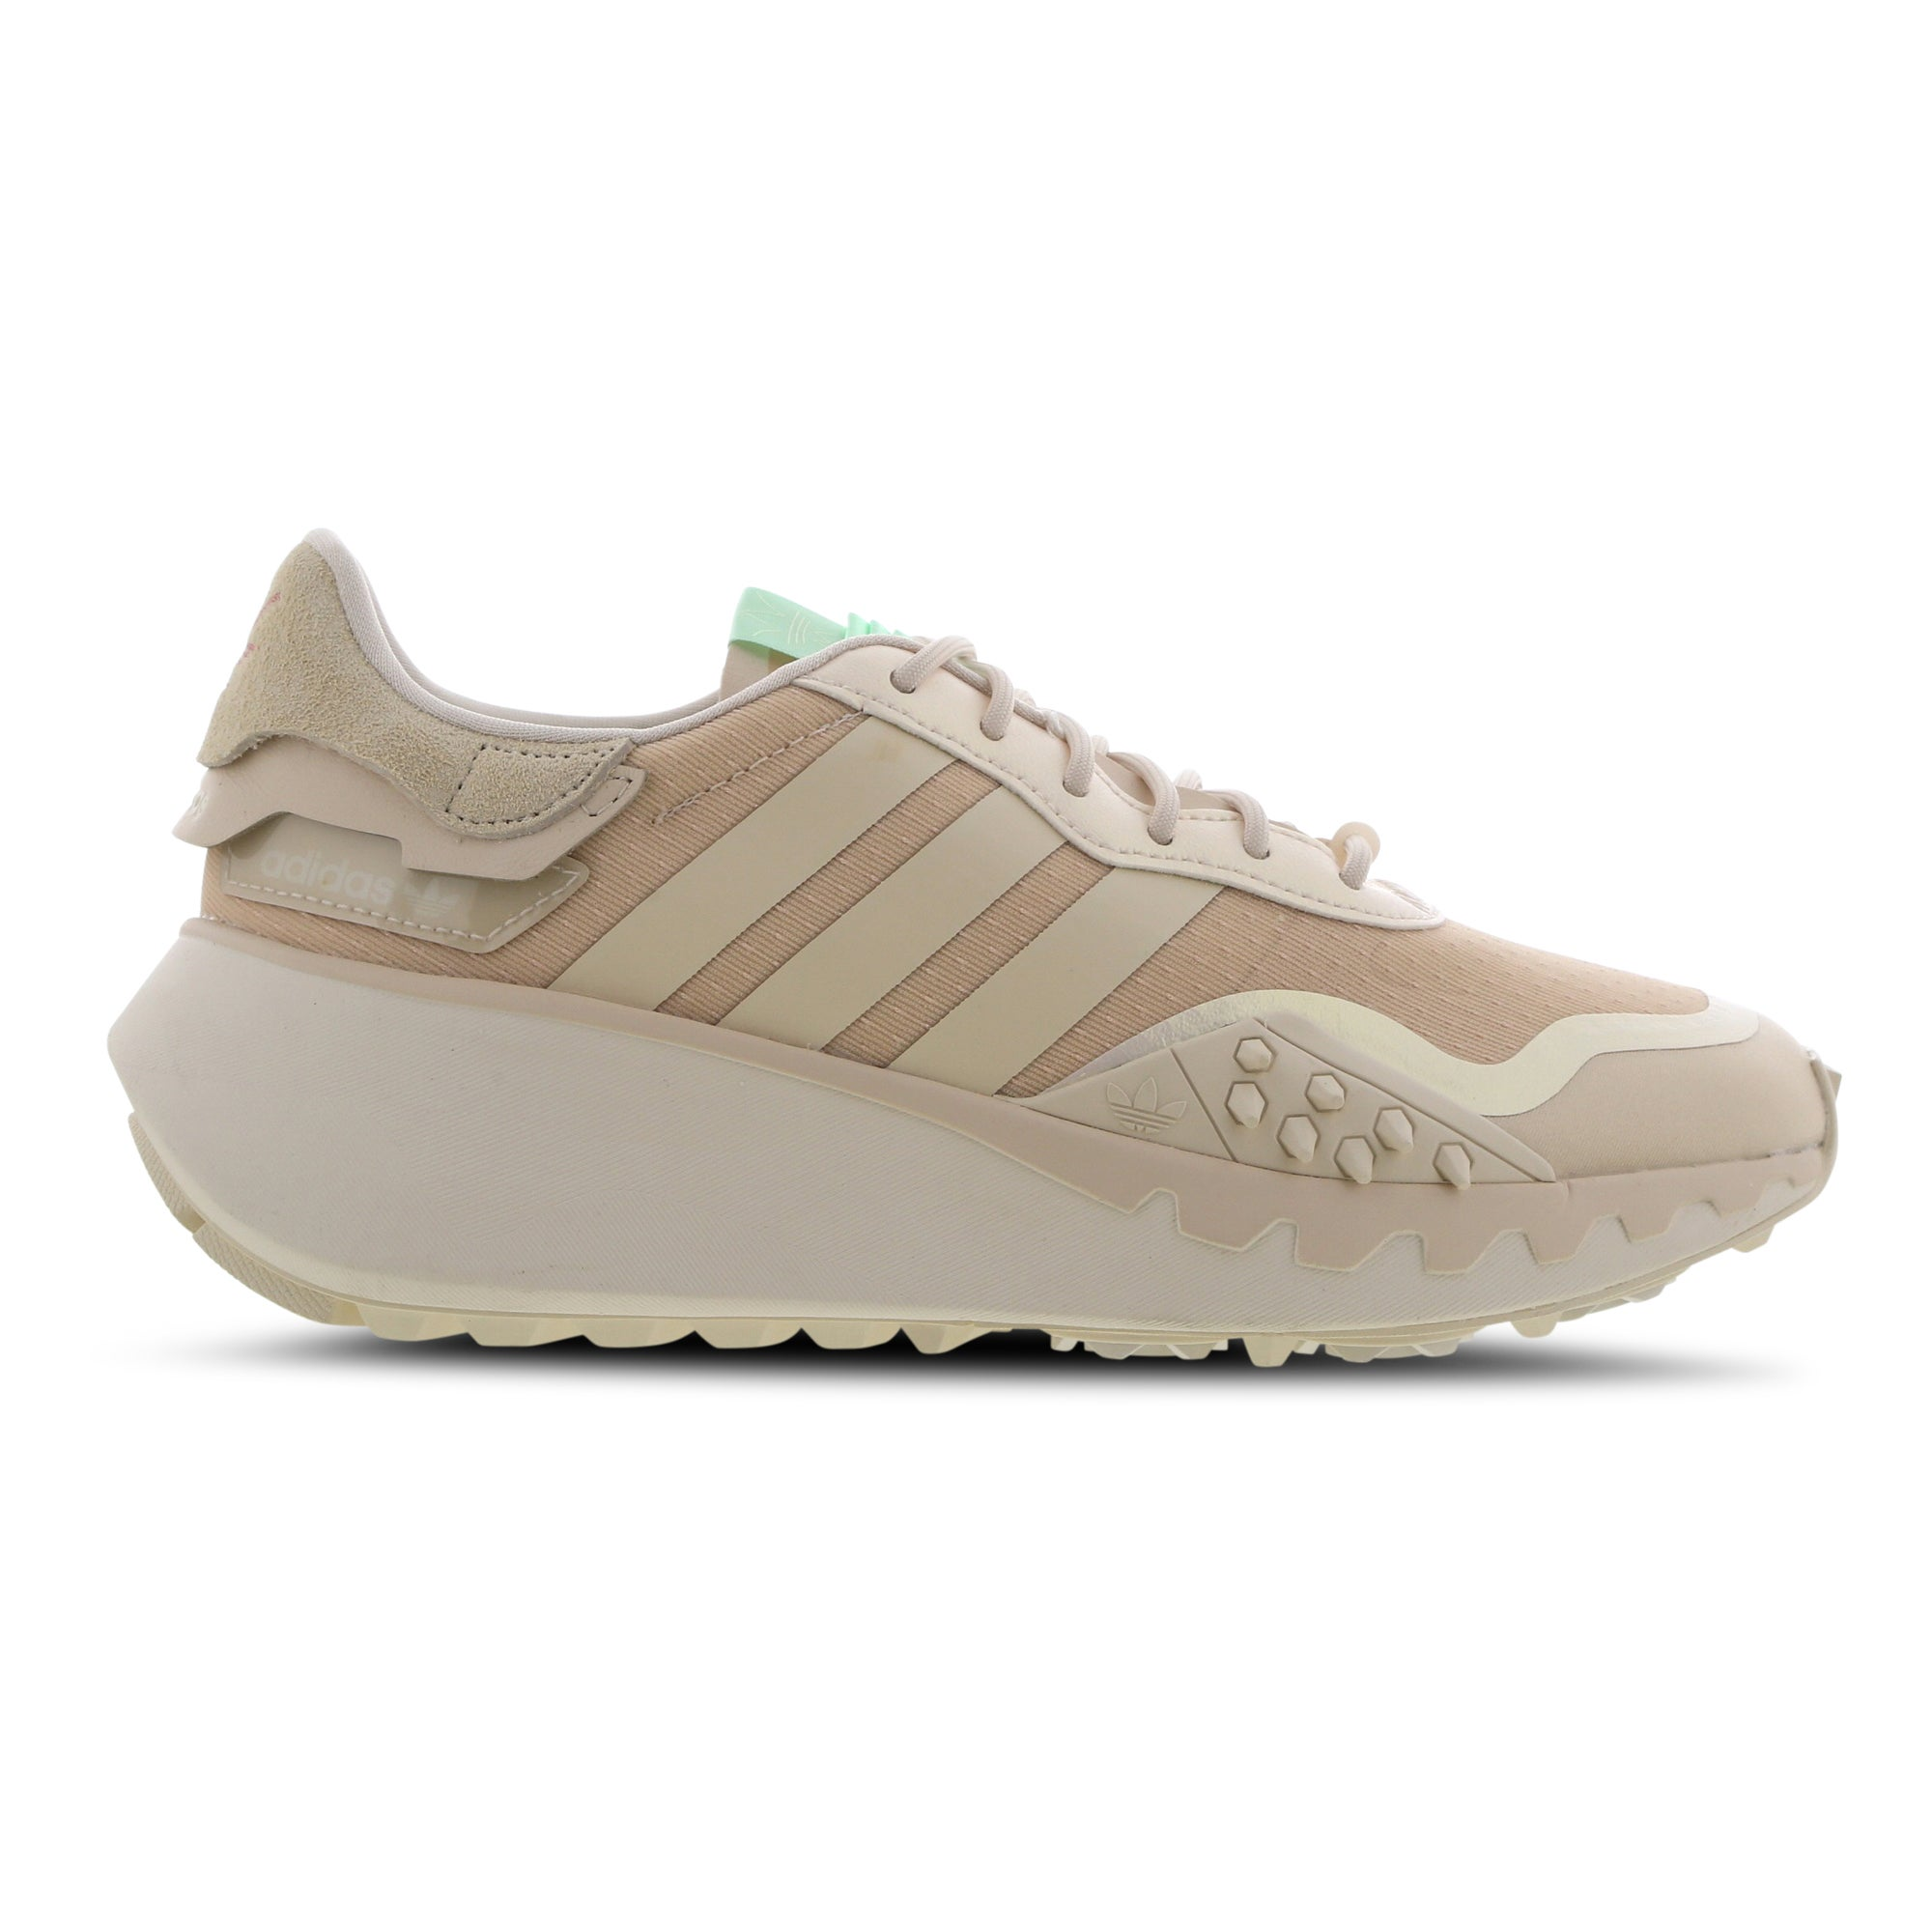 adidas Choigo Runner Shoes